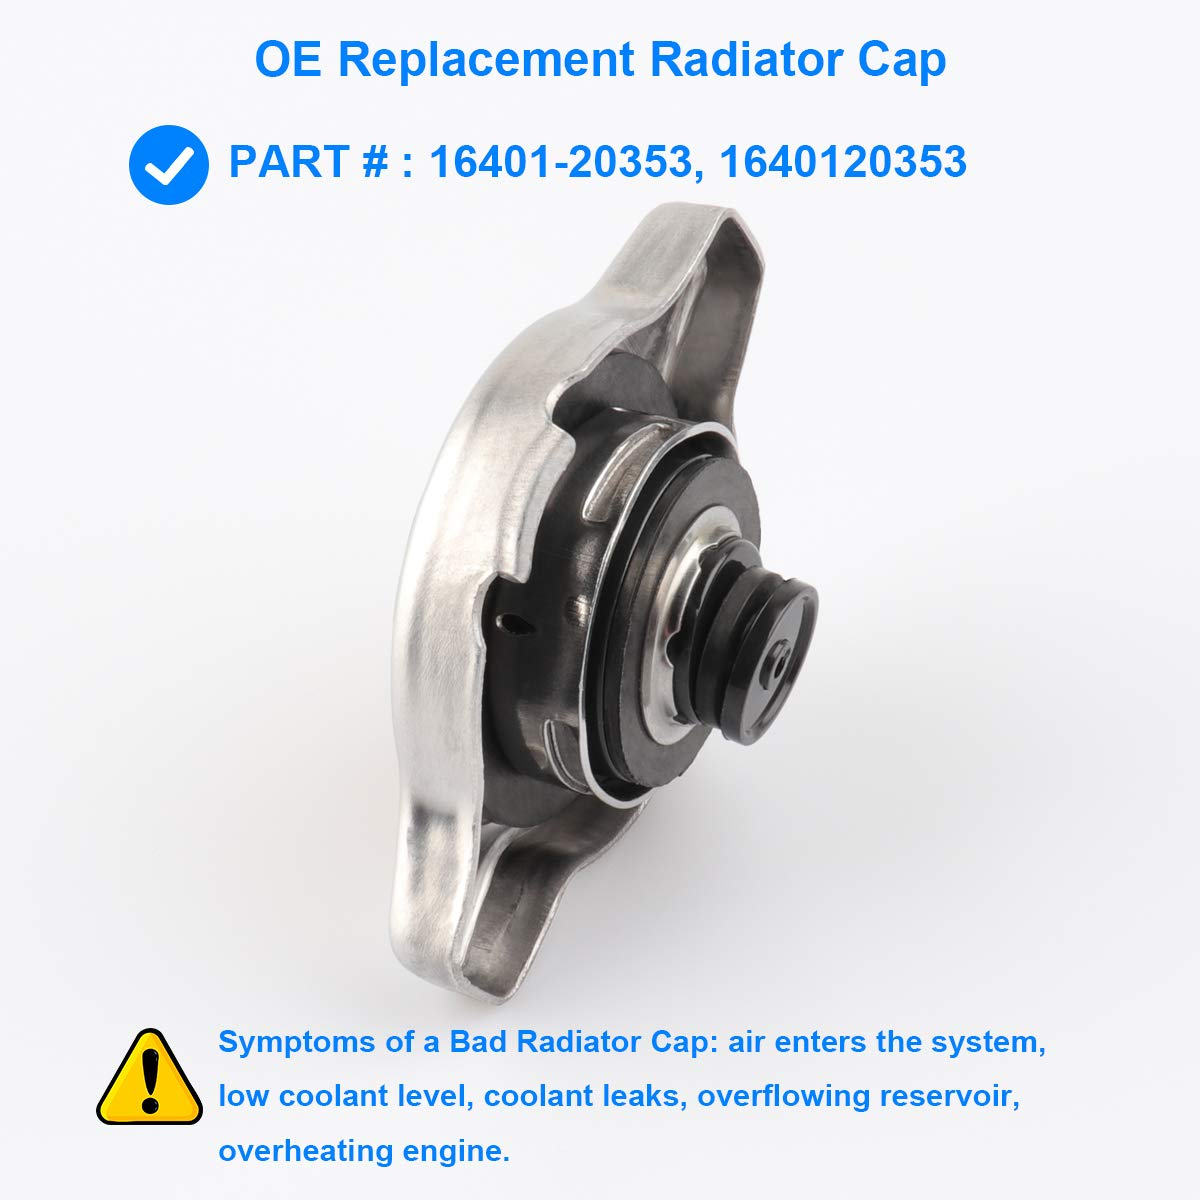 Bad Radiator Cap Symptoms >> Radiator Cap Sub Assembly Replace 16401 20353 1640120353 For 1996 2000 Toyota 4runner 1989 2001 Toyota Camry 1993 2016 Toyota Corolla 2000 2006